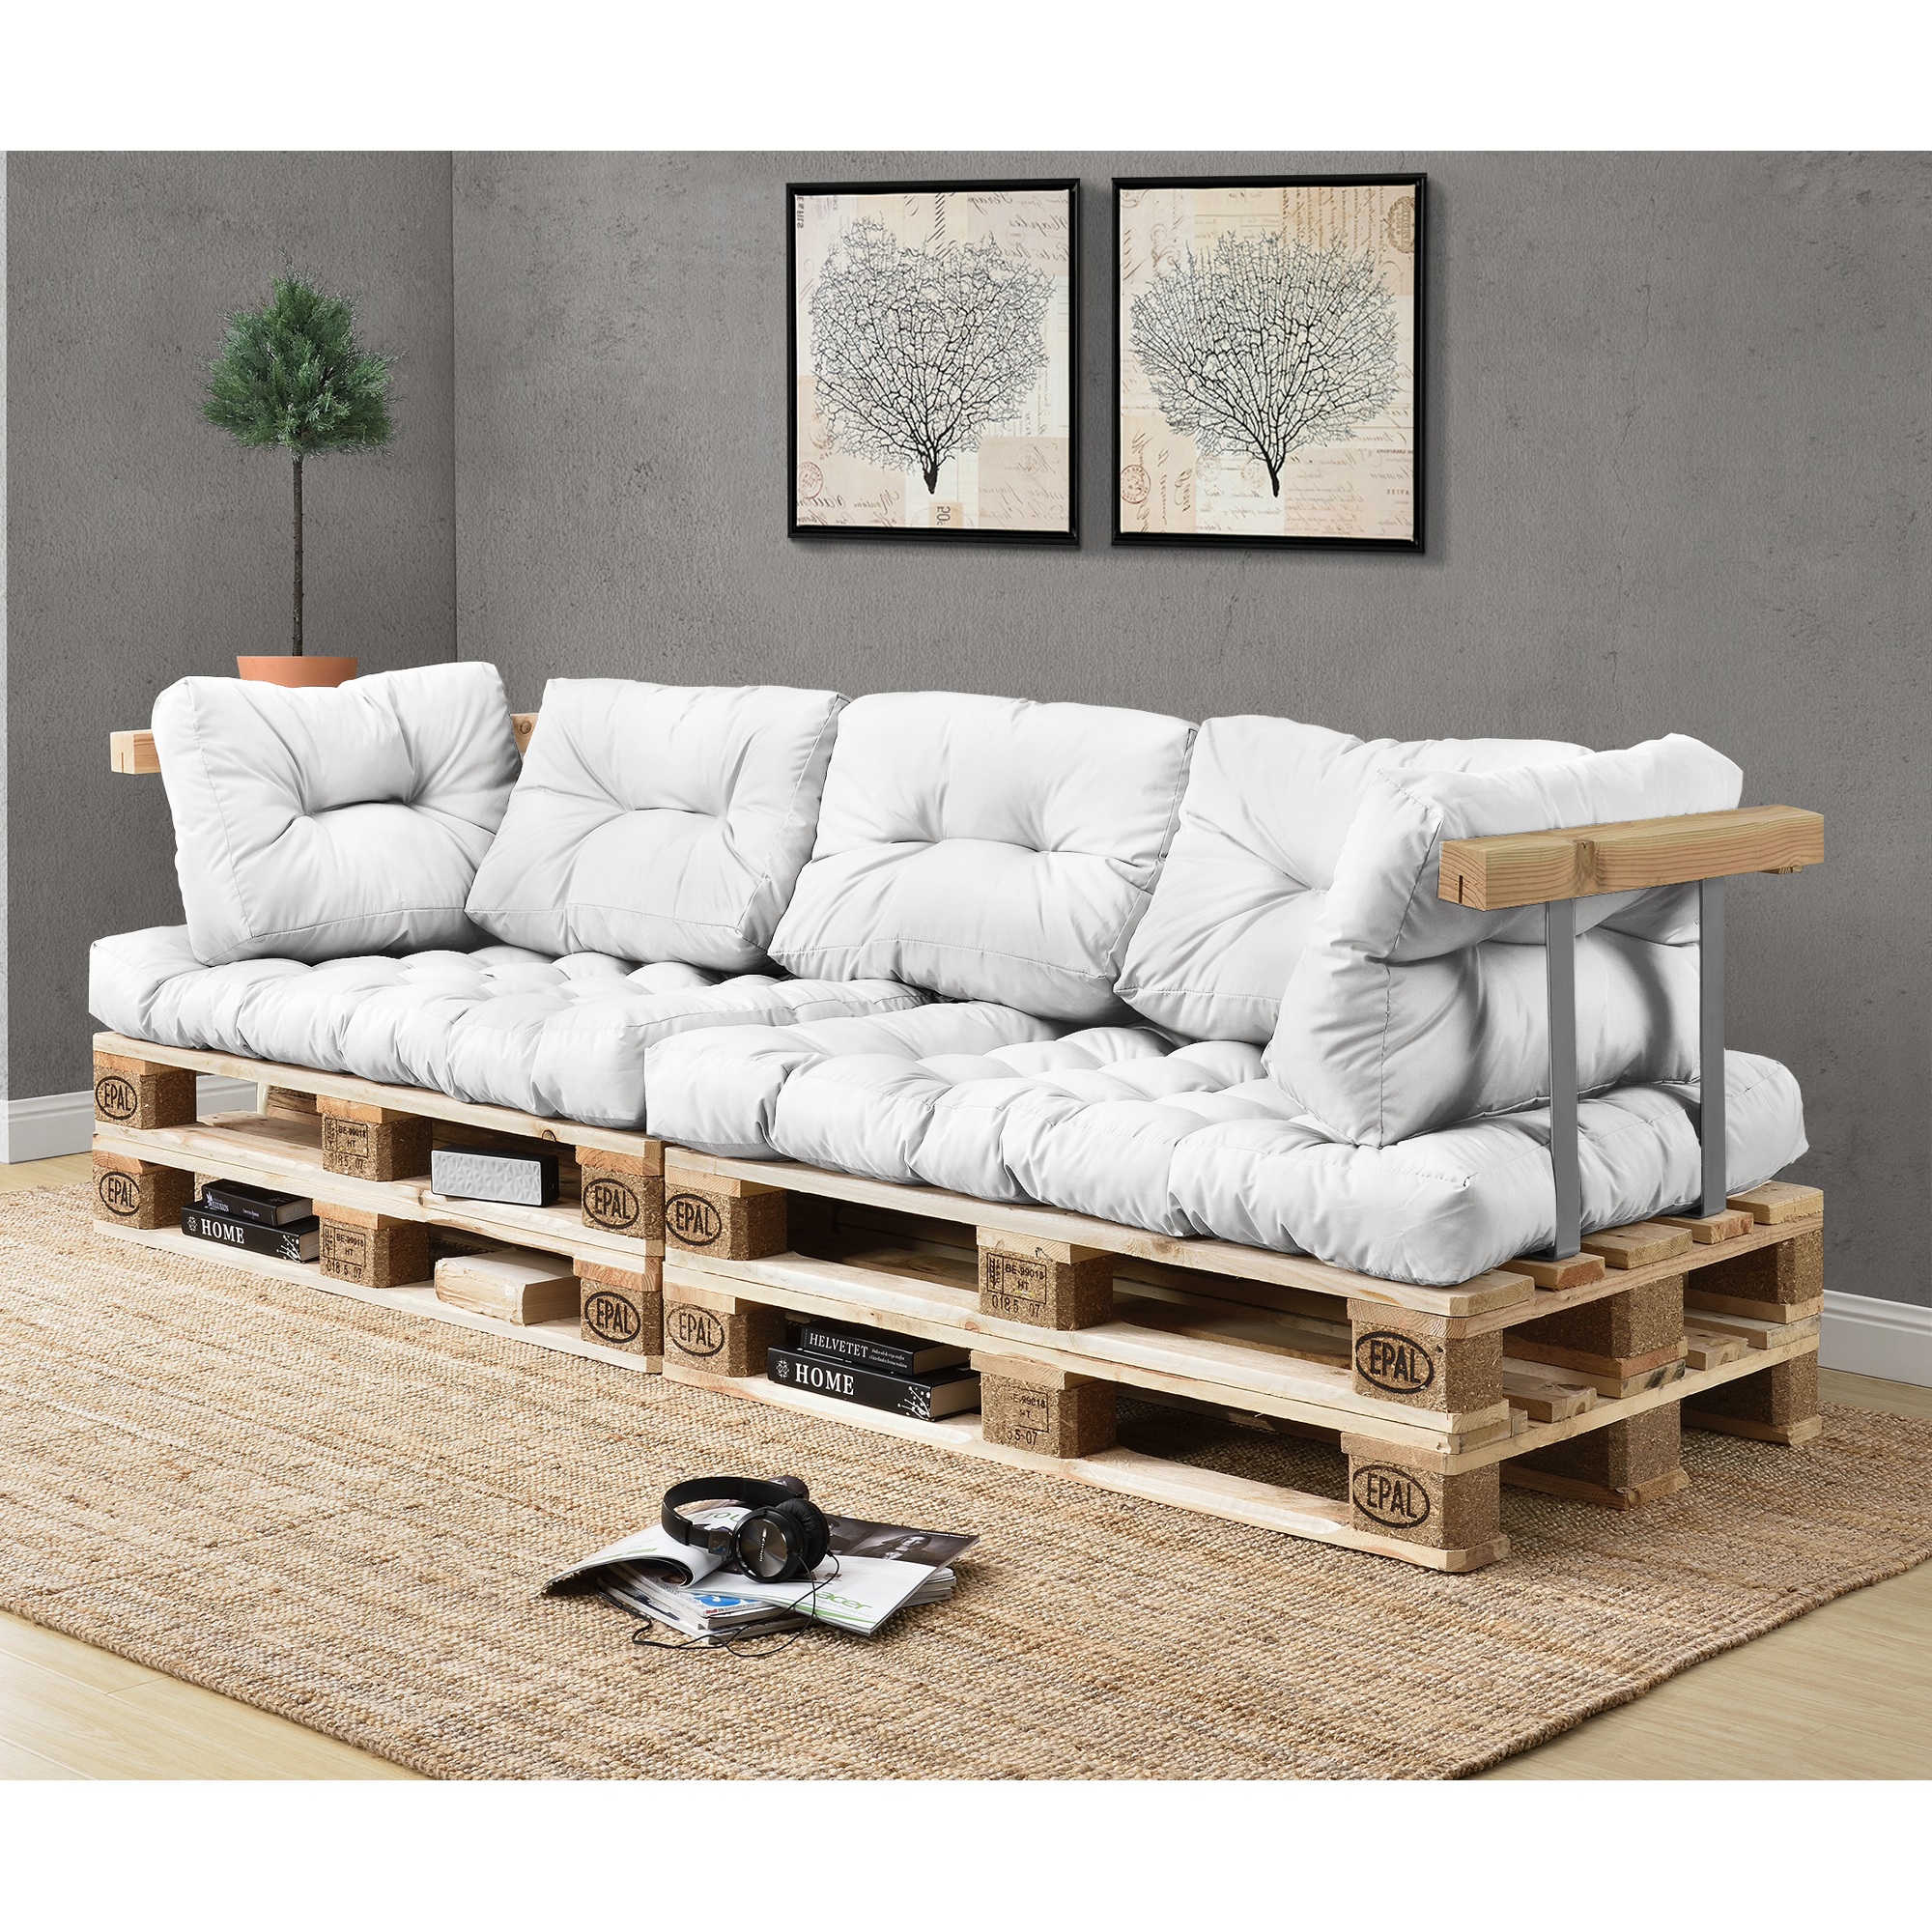 1x seat pad pallet cushions in outdoor pallets. Black Bedroom Furniture Sets. Home Design Ideas